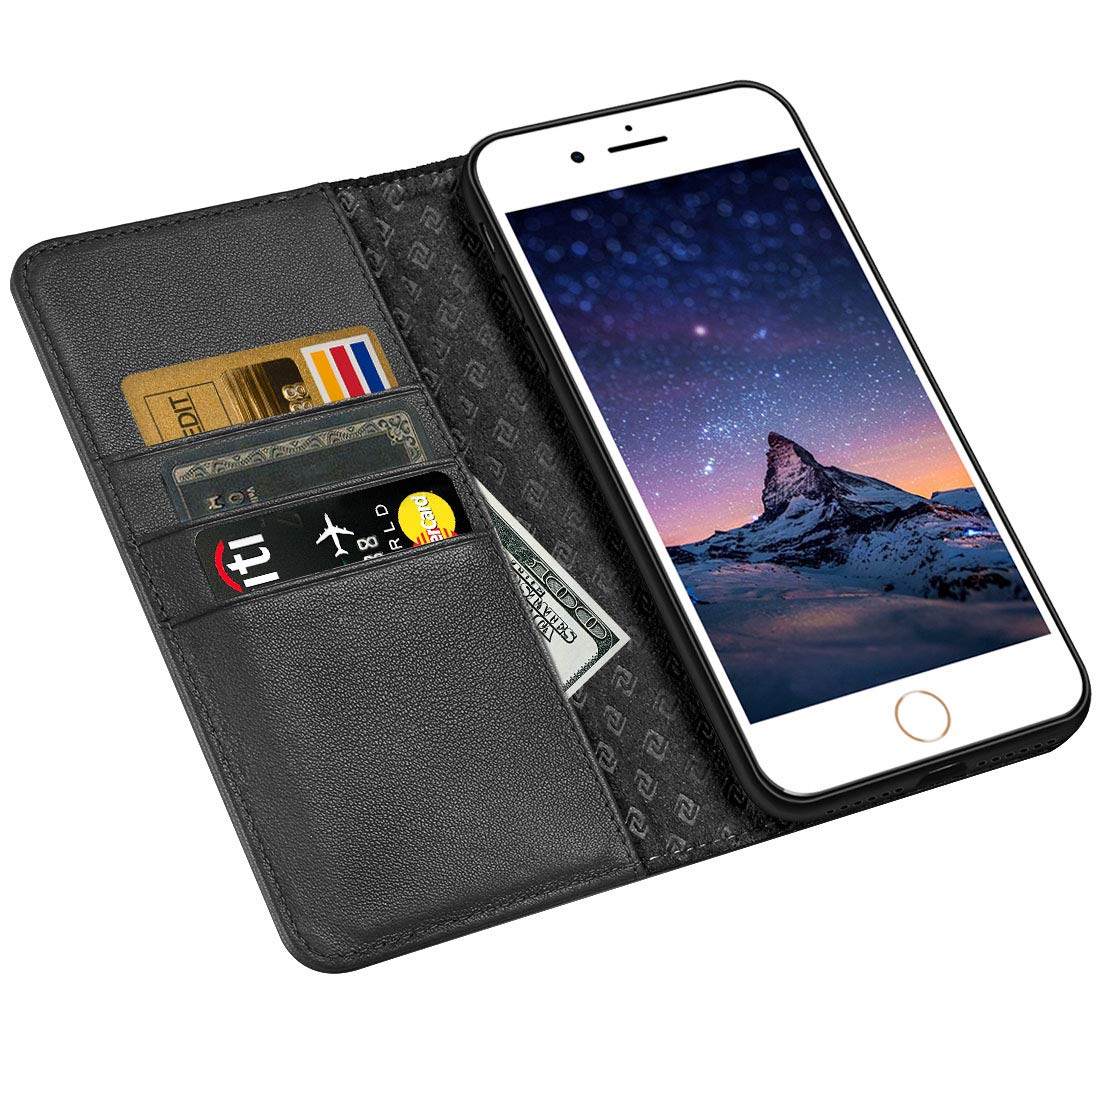 iPhone 6S Case iPhone 6 case ZOVER Genuine Leather Case Flip Folio Book Case Wallet Cover with Kickstand Feature Card Slots & ID Holder and Magnetic Closure for iPhone 6 and iPhone 6S Black